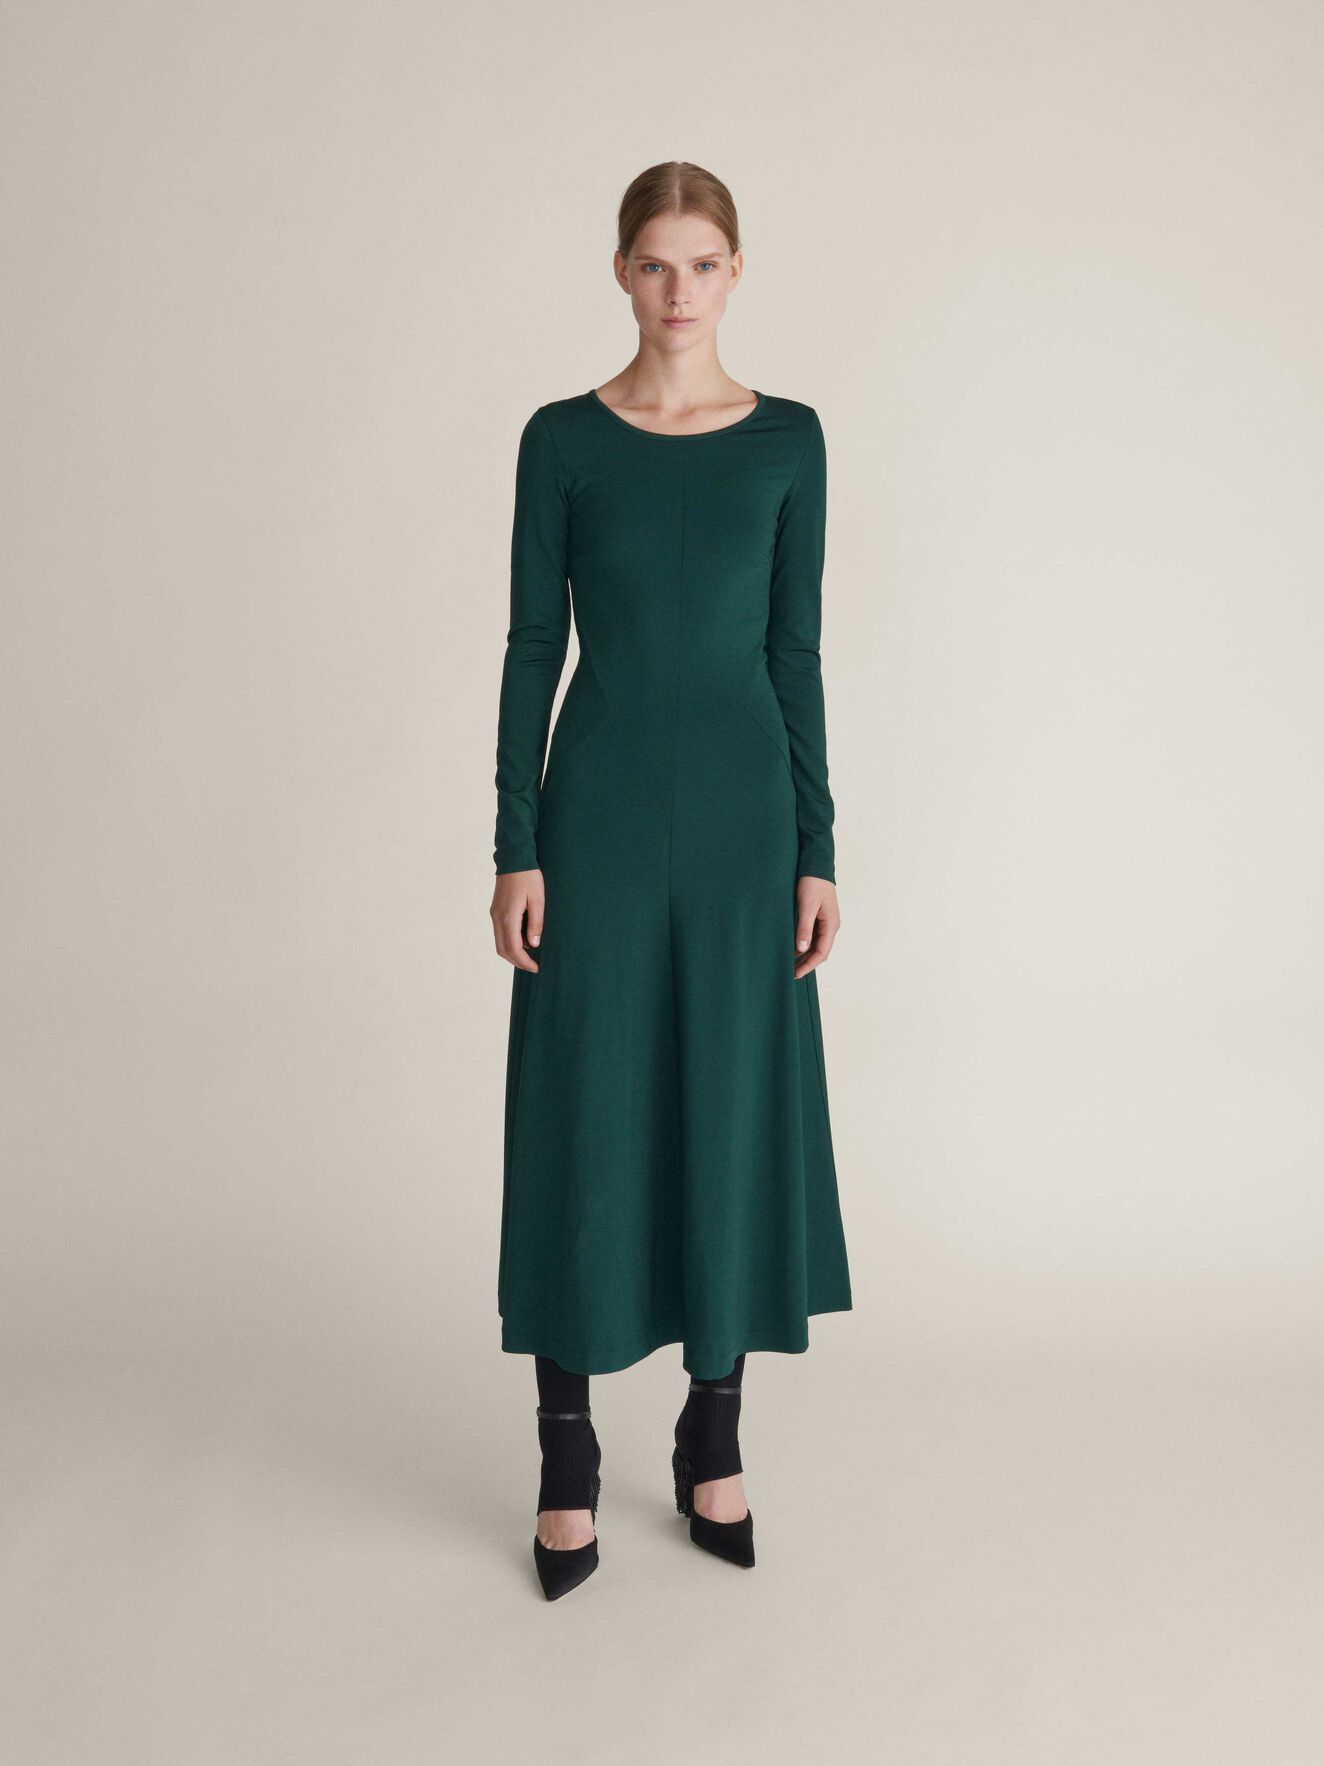 Moby Dress in Dark Forest from Tiger of Sweden